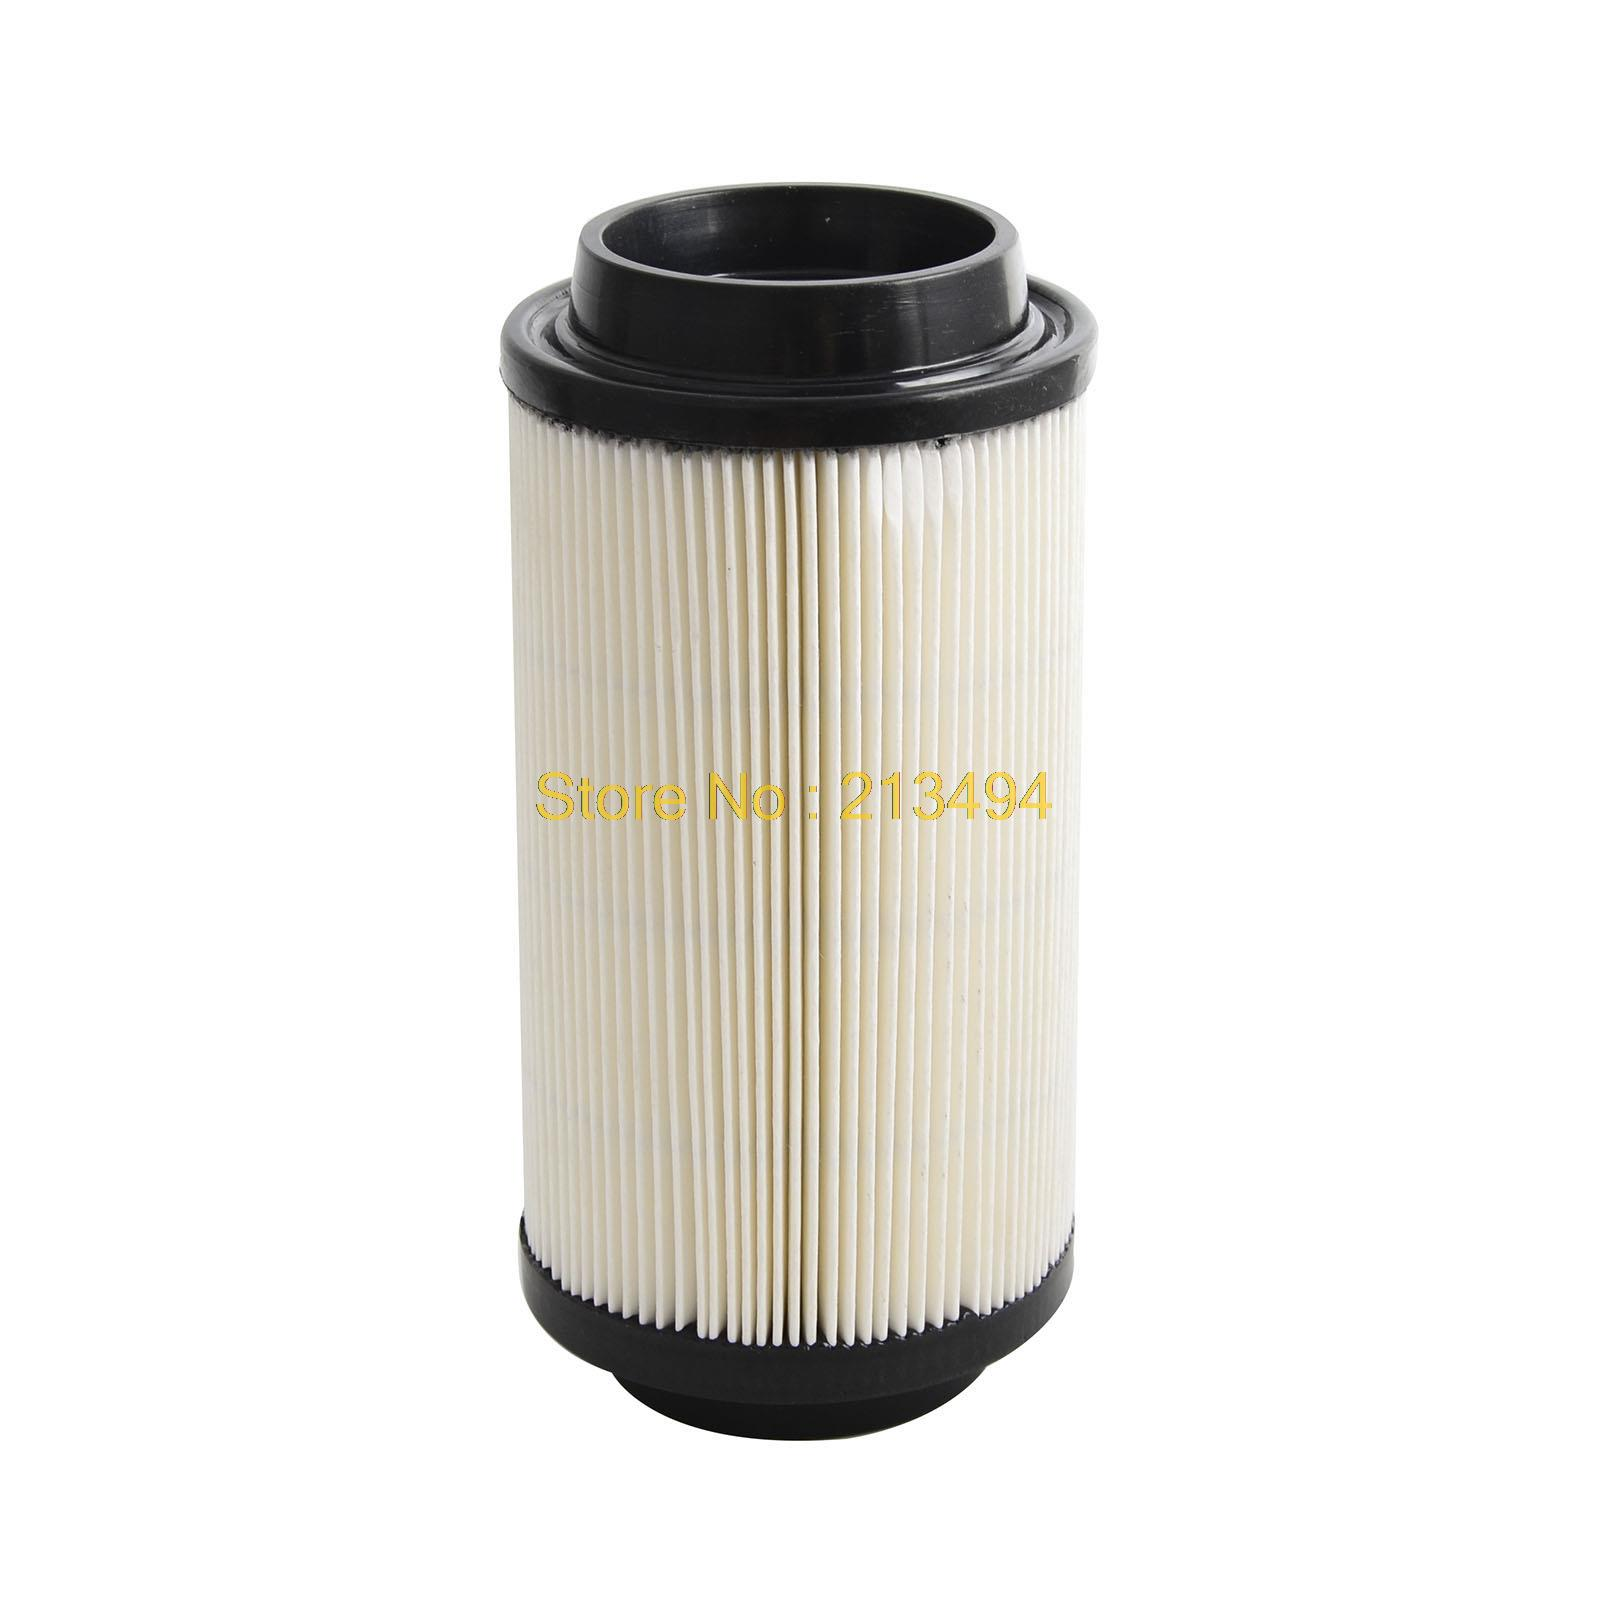 US $8 5 |Air Filter For Polaris Sportsman Scrambler 400 500 600 700 800 550  850 XP850 XP1000 Trail Boss 325 330 Xpedition Magnum-in Air Filters &